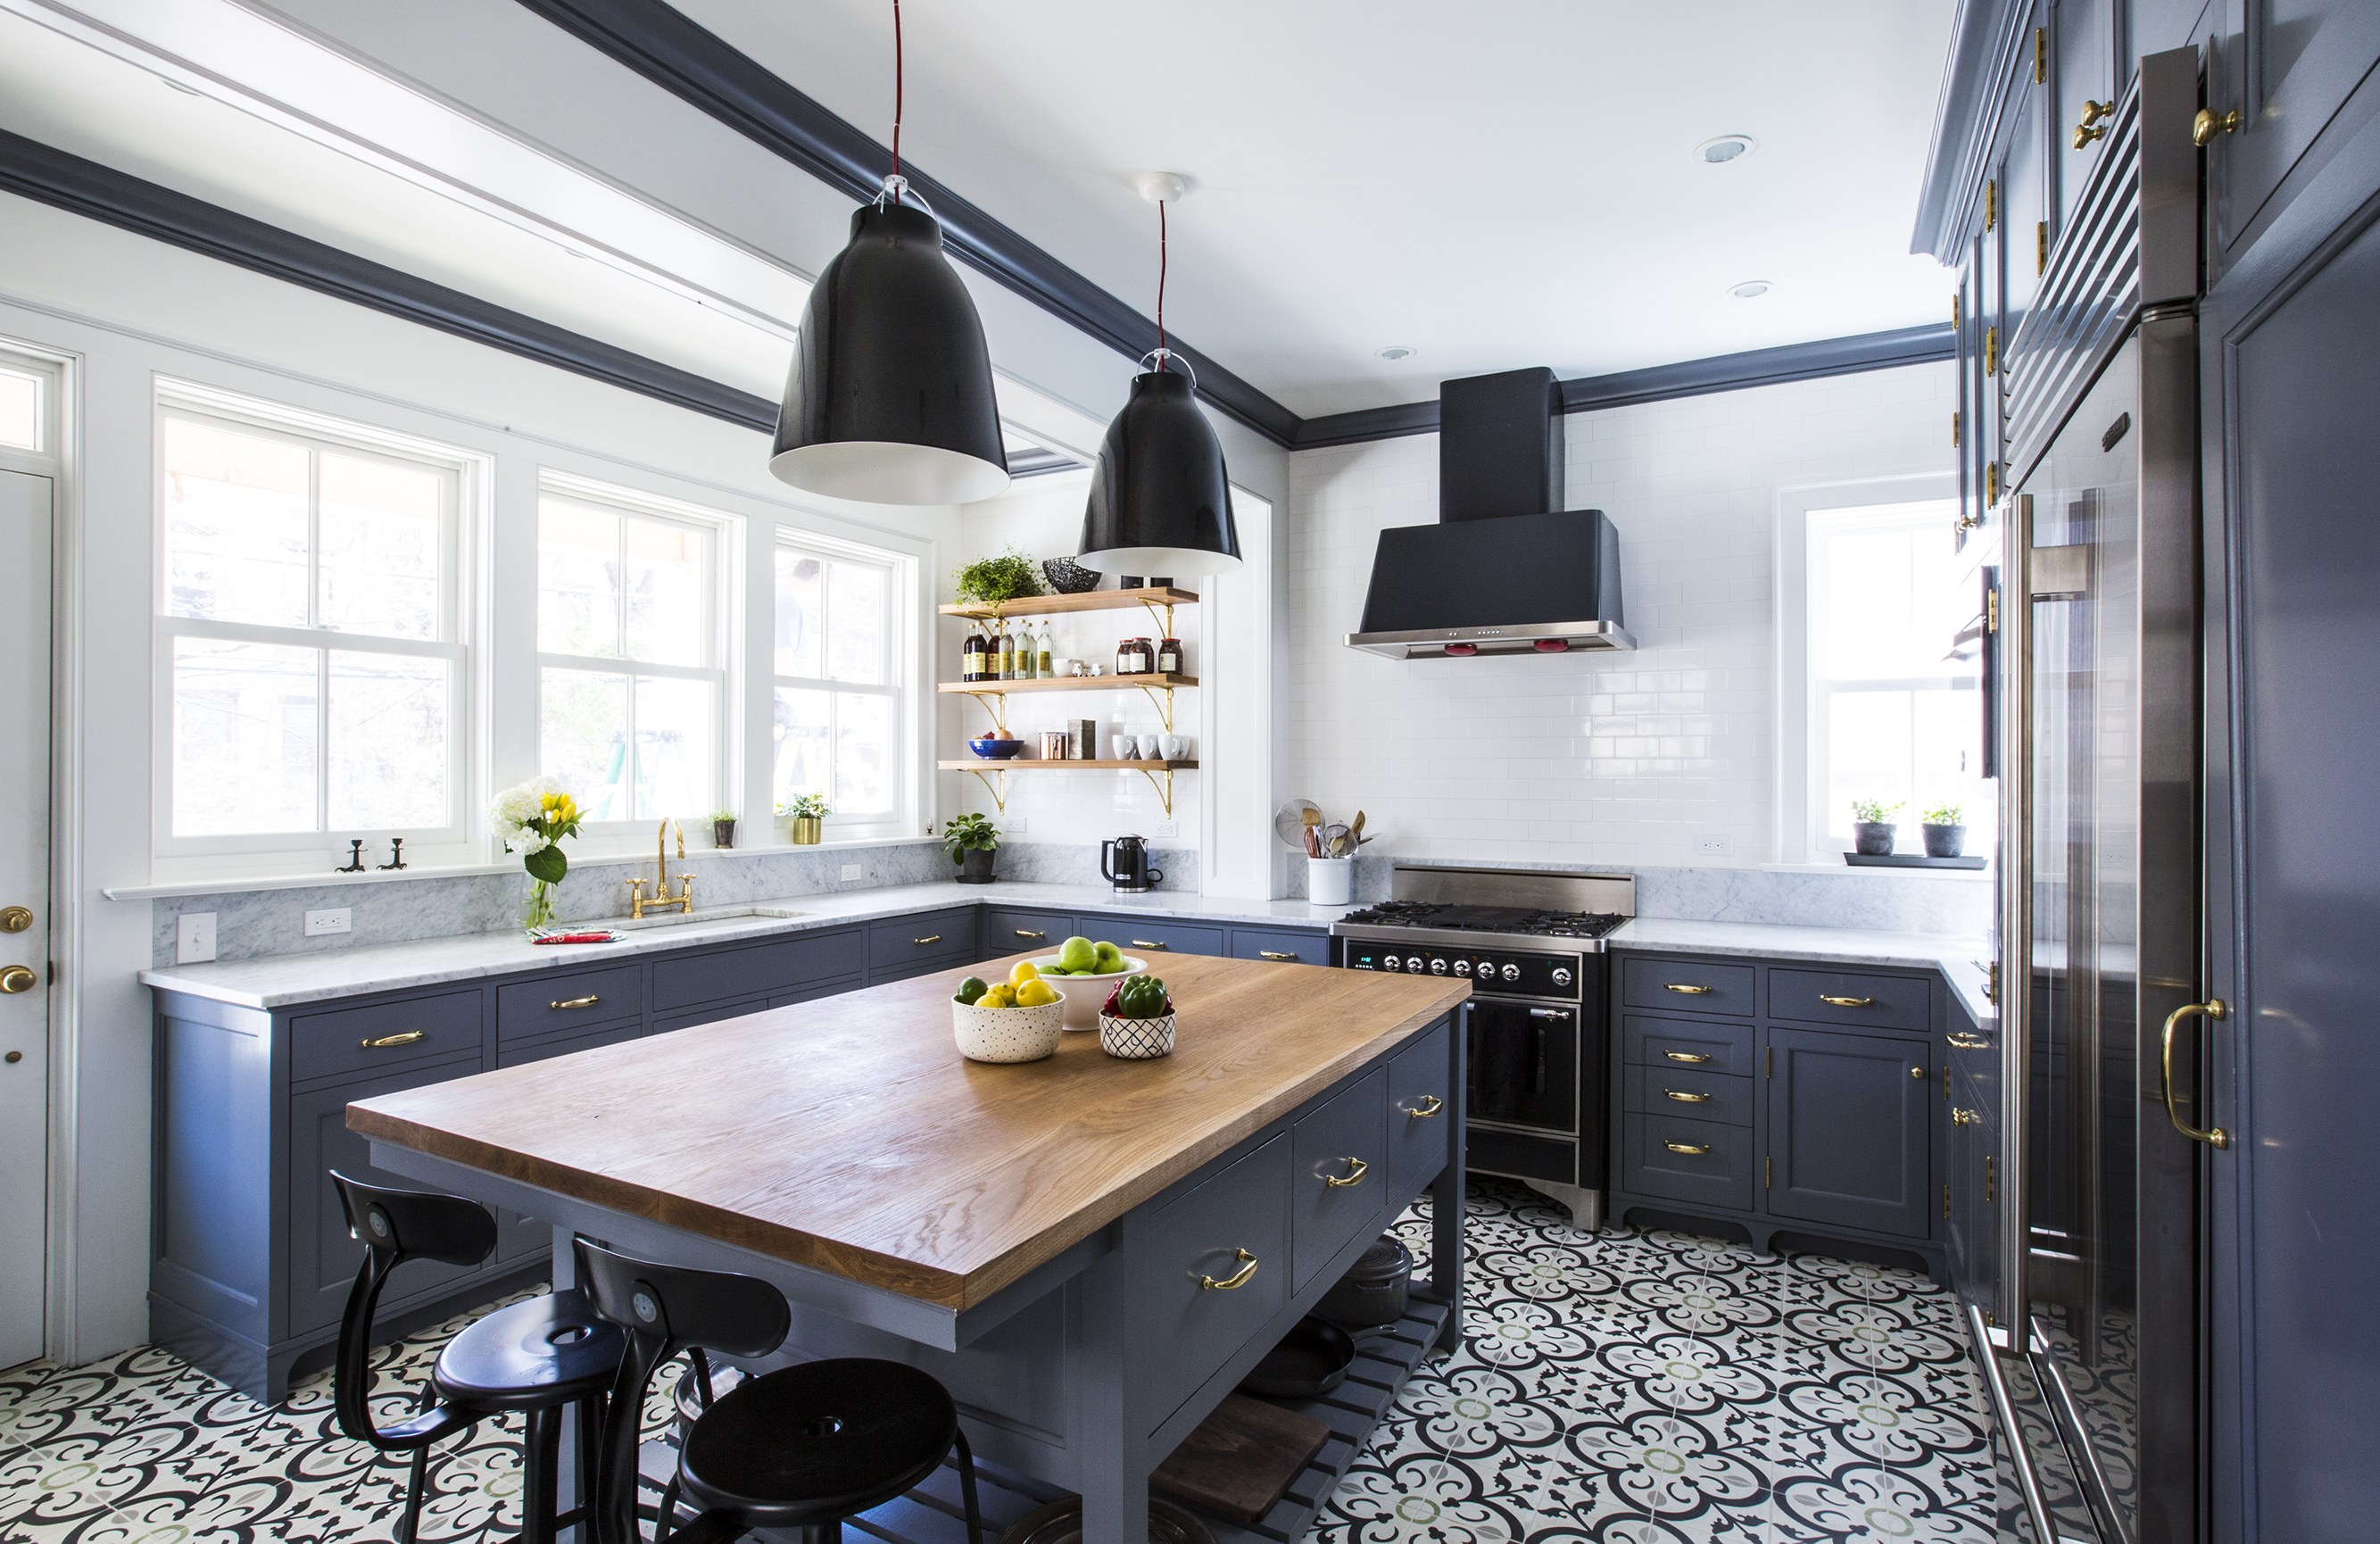 before and after: a white-and-gray kitchen renovation photos |  architectural digest AEFRESF